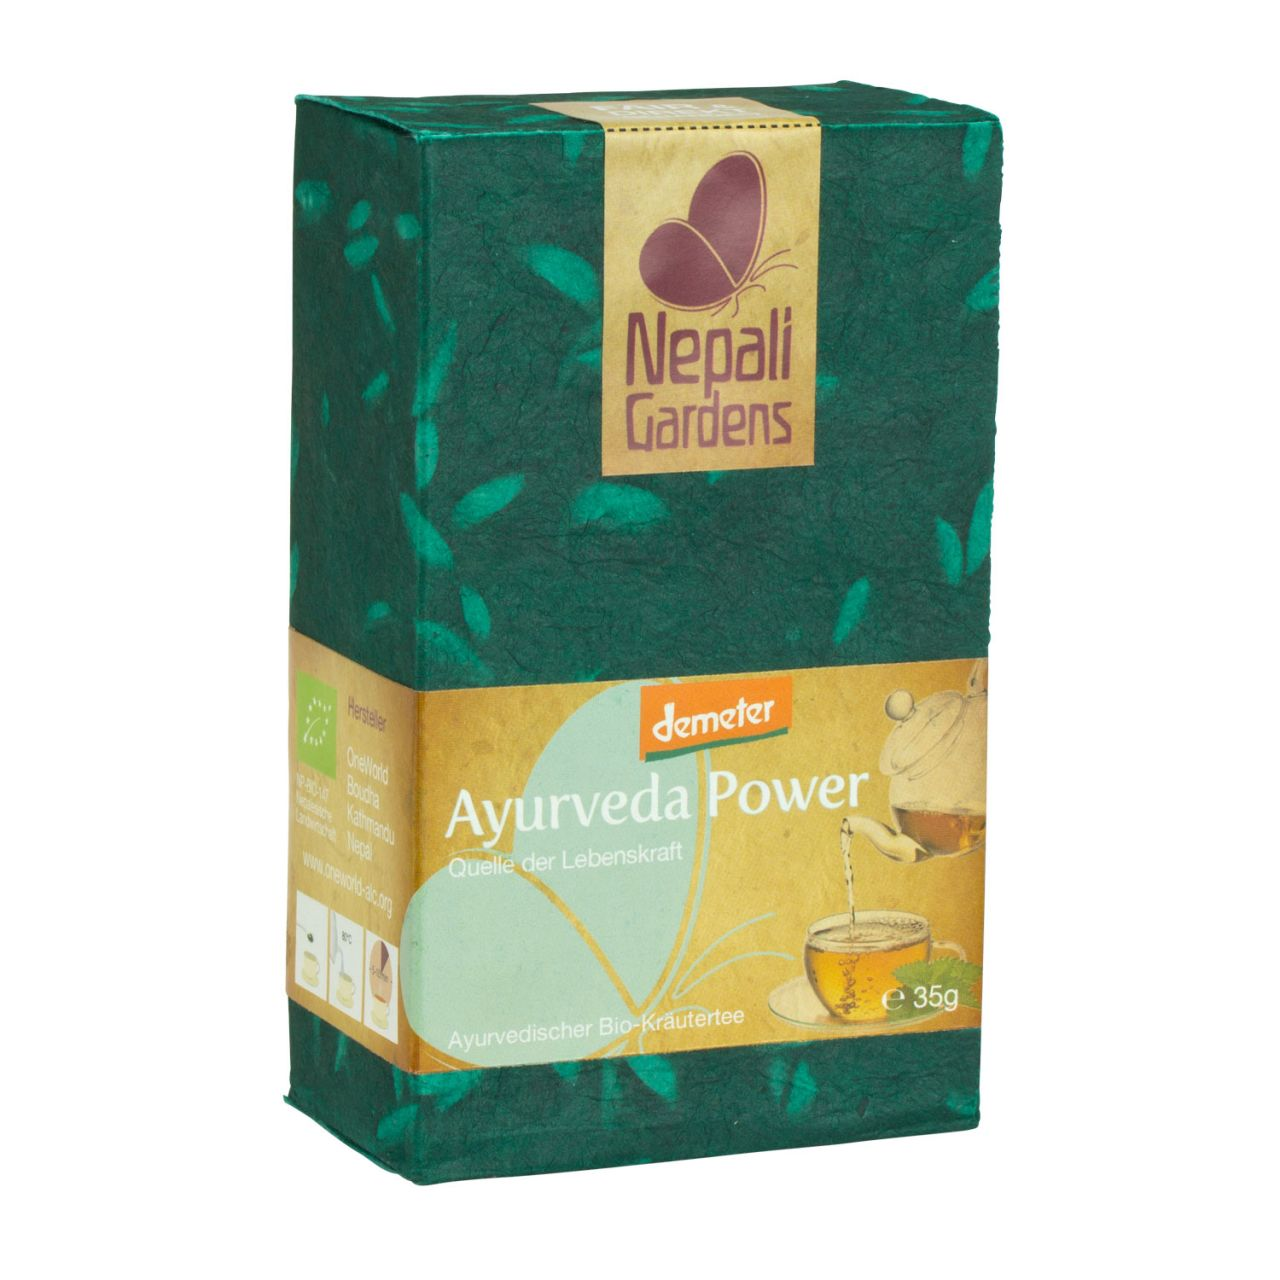 Ayurveda Power